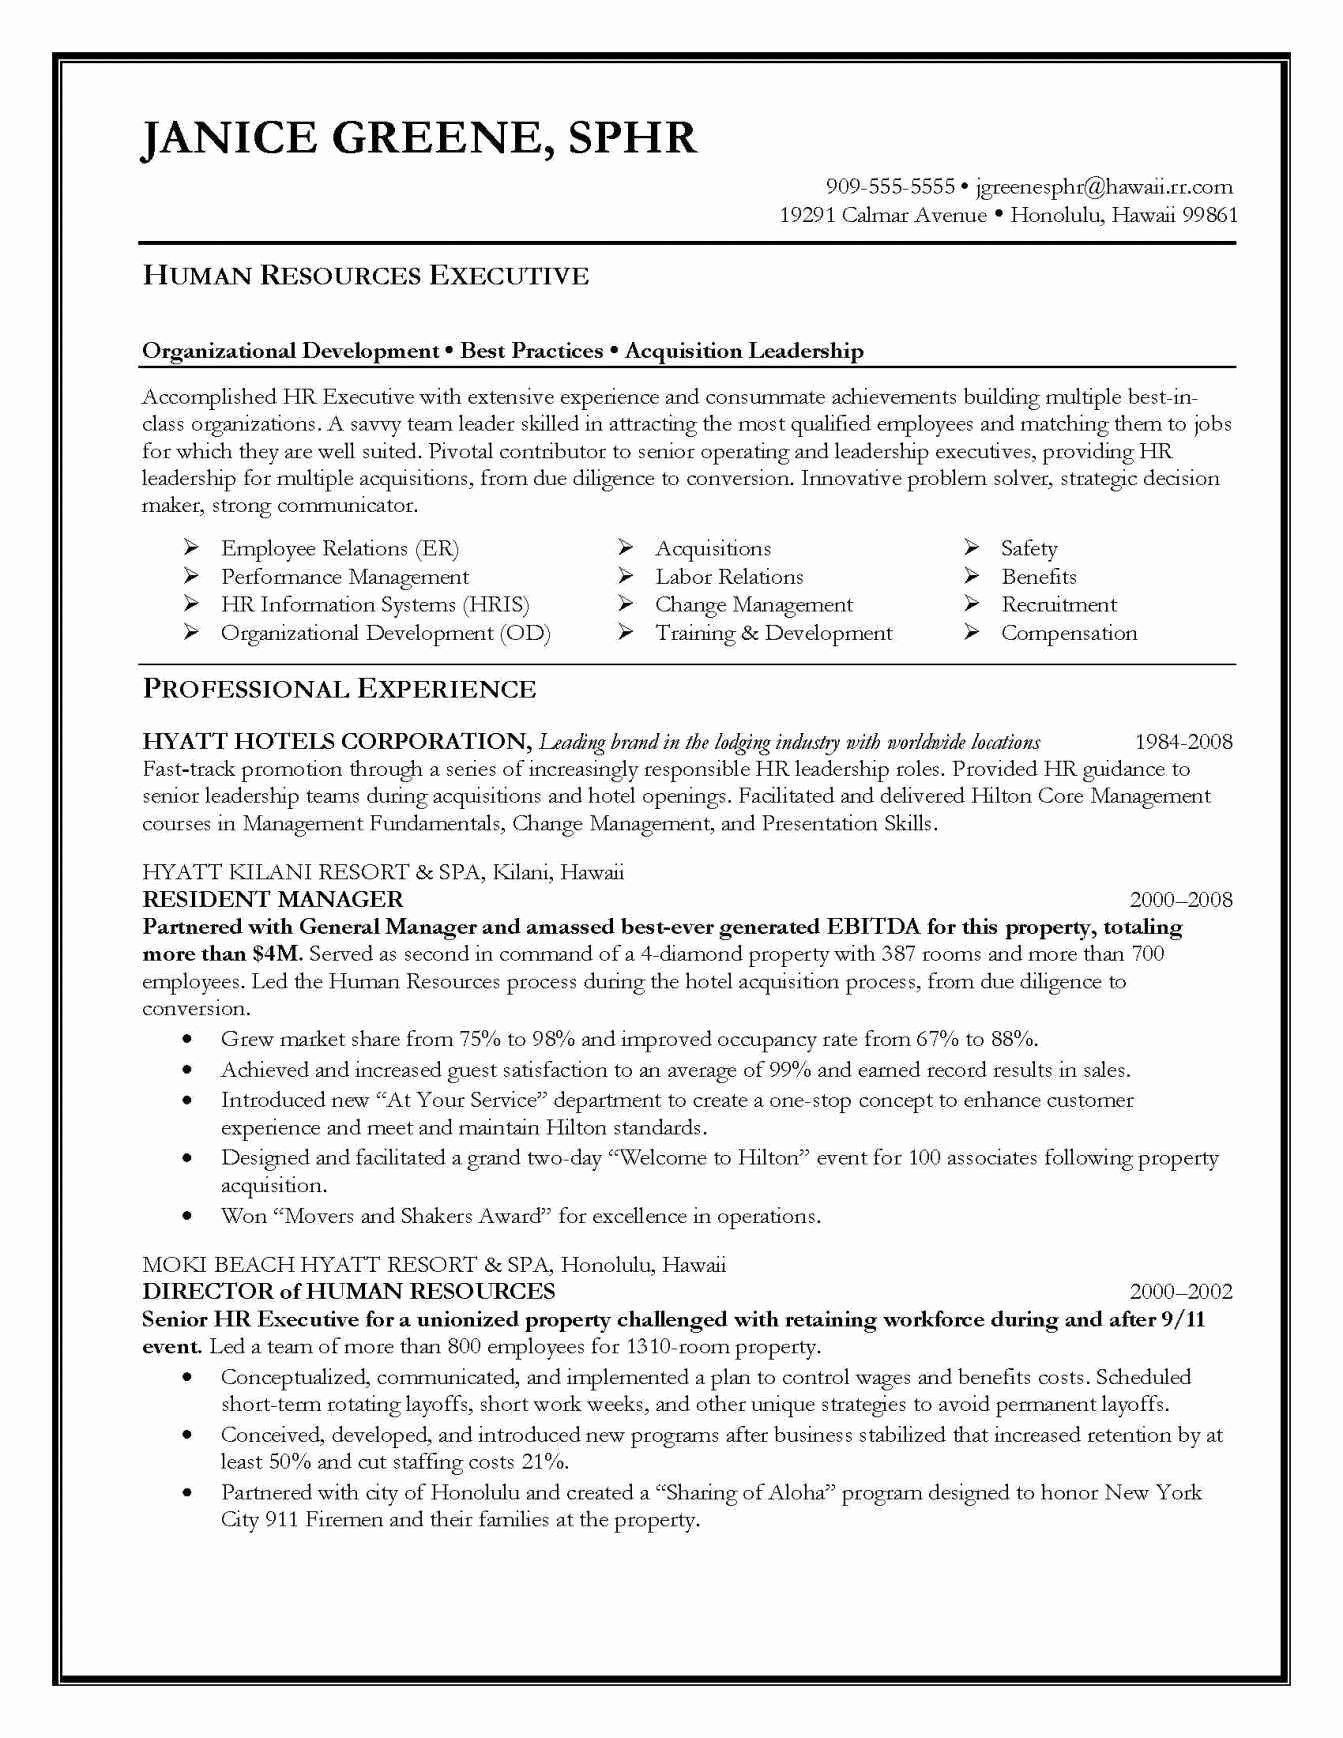 Team Mission Statement Examples Resume Objective Examples Resume Examples Resume Skills Insurance underwriter cover letter no experience